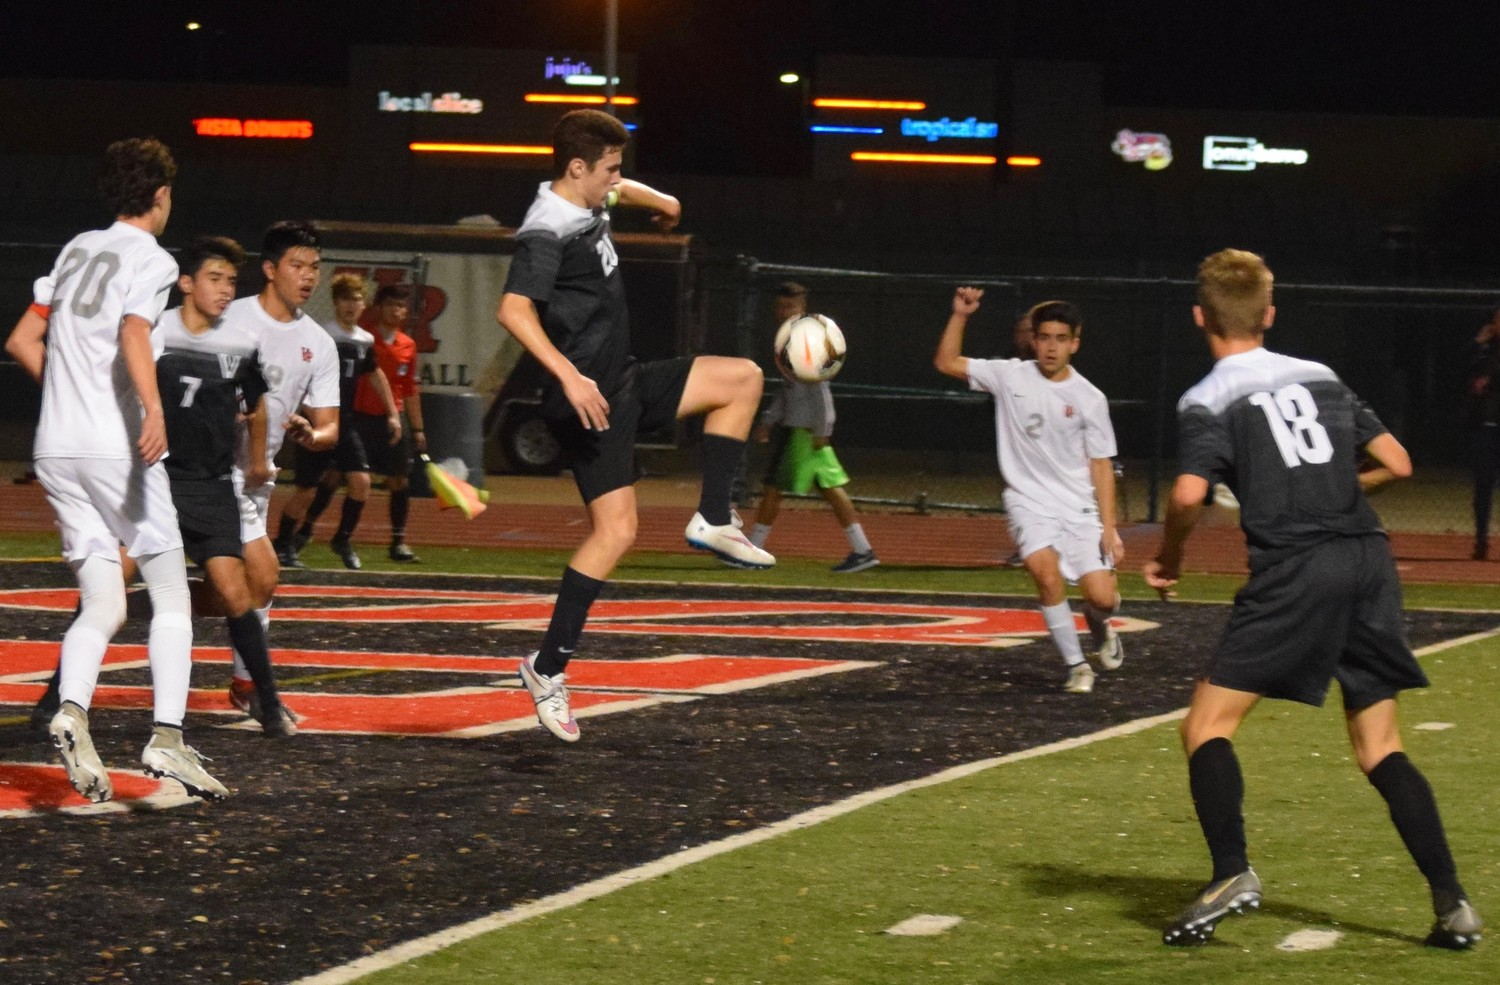 Tadhg McDaid volleys the during a district game Tuesday night at Vista Ridge High School. The Rangers won 3-2.